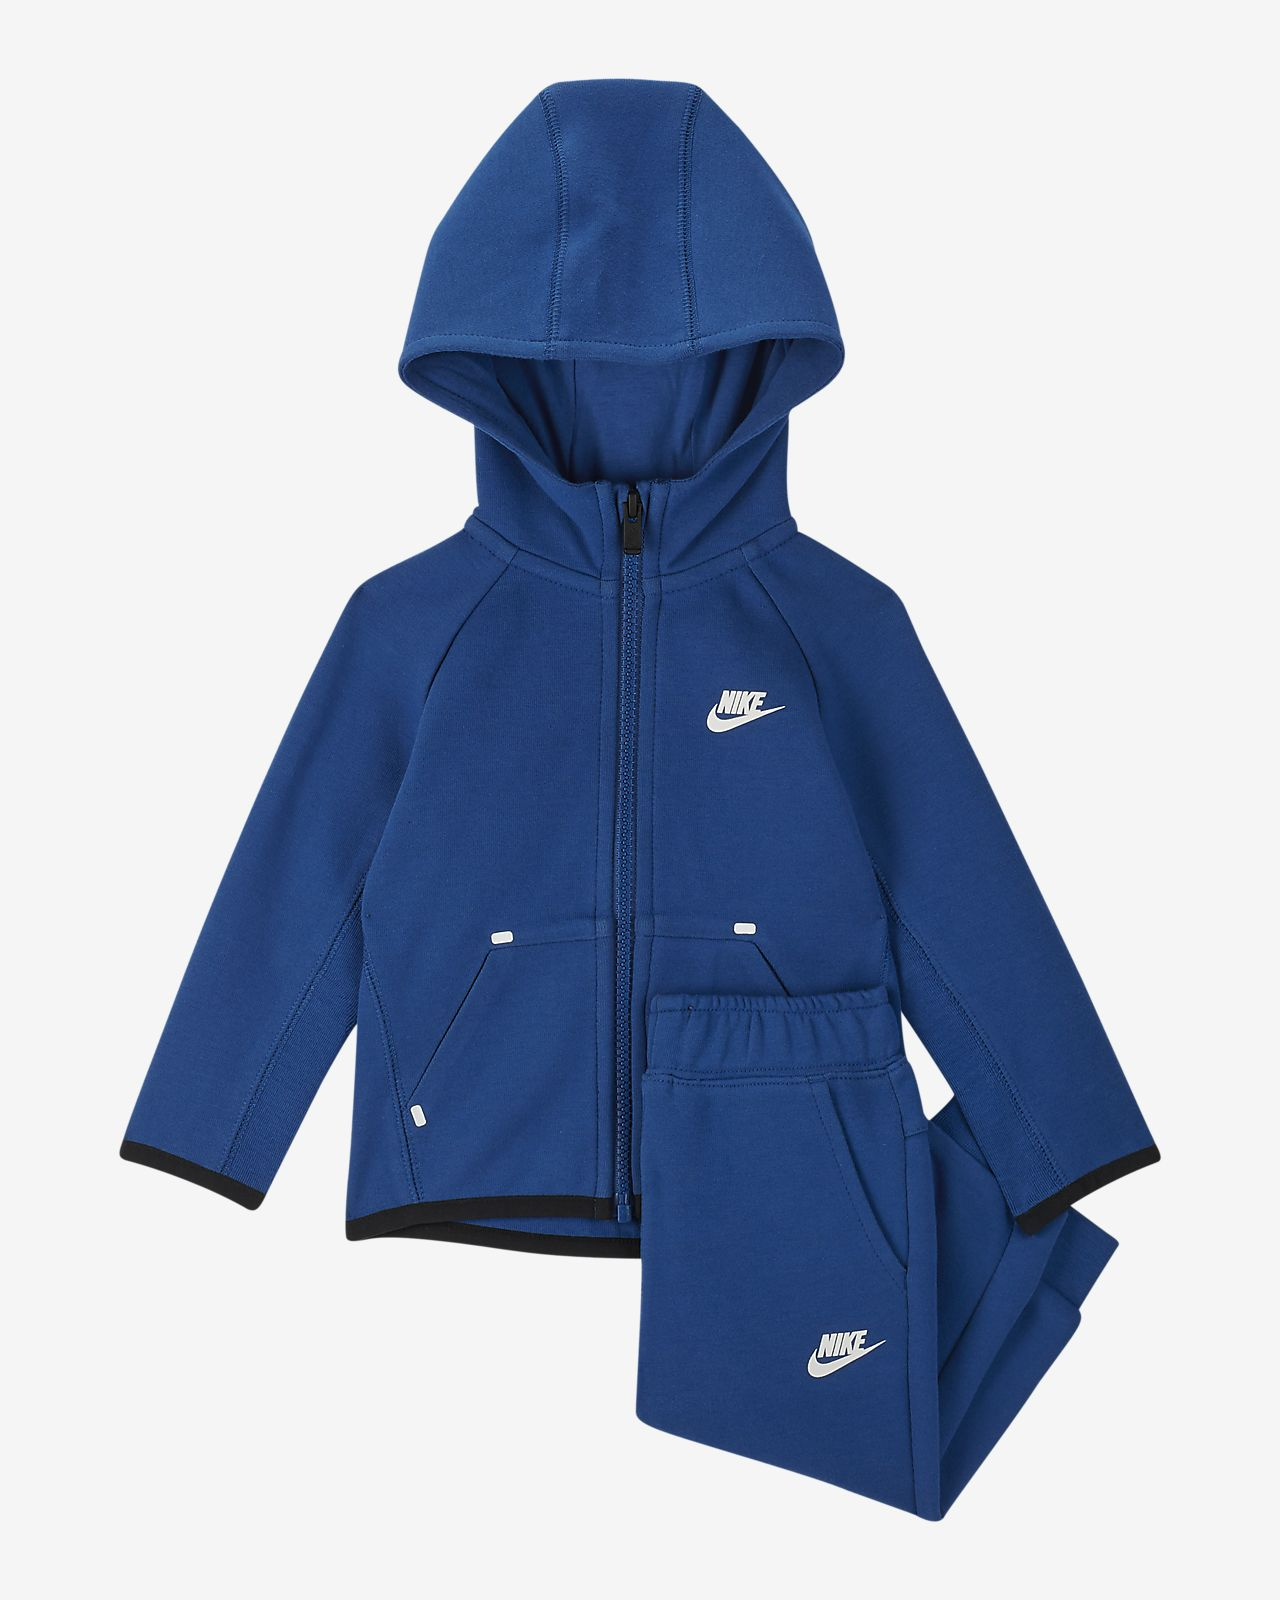 Nike Sportswear Tech Fleece Baby (12\u201324M) Hoodie and Joggers Set